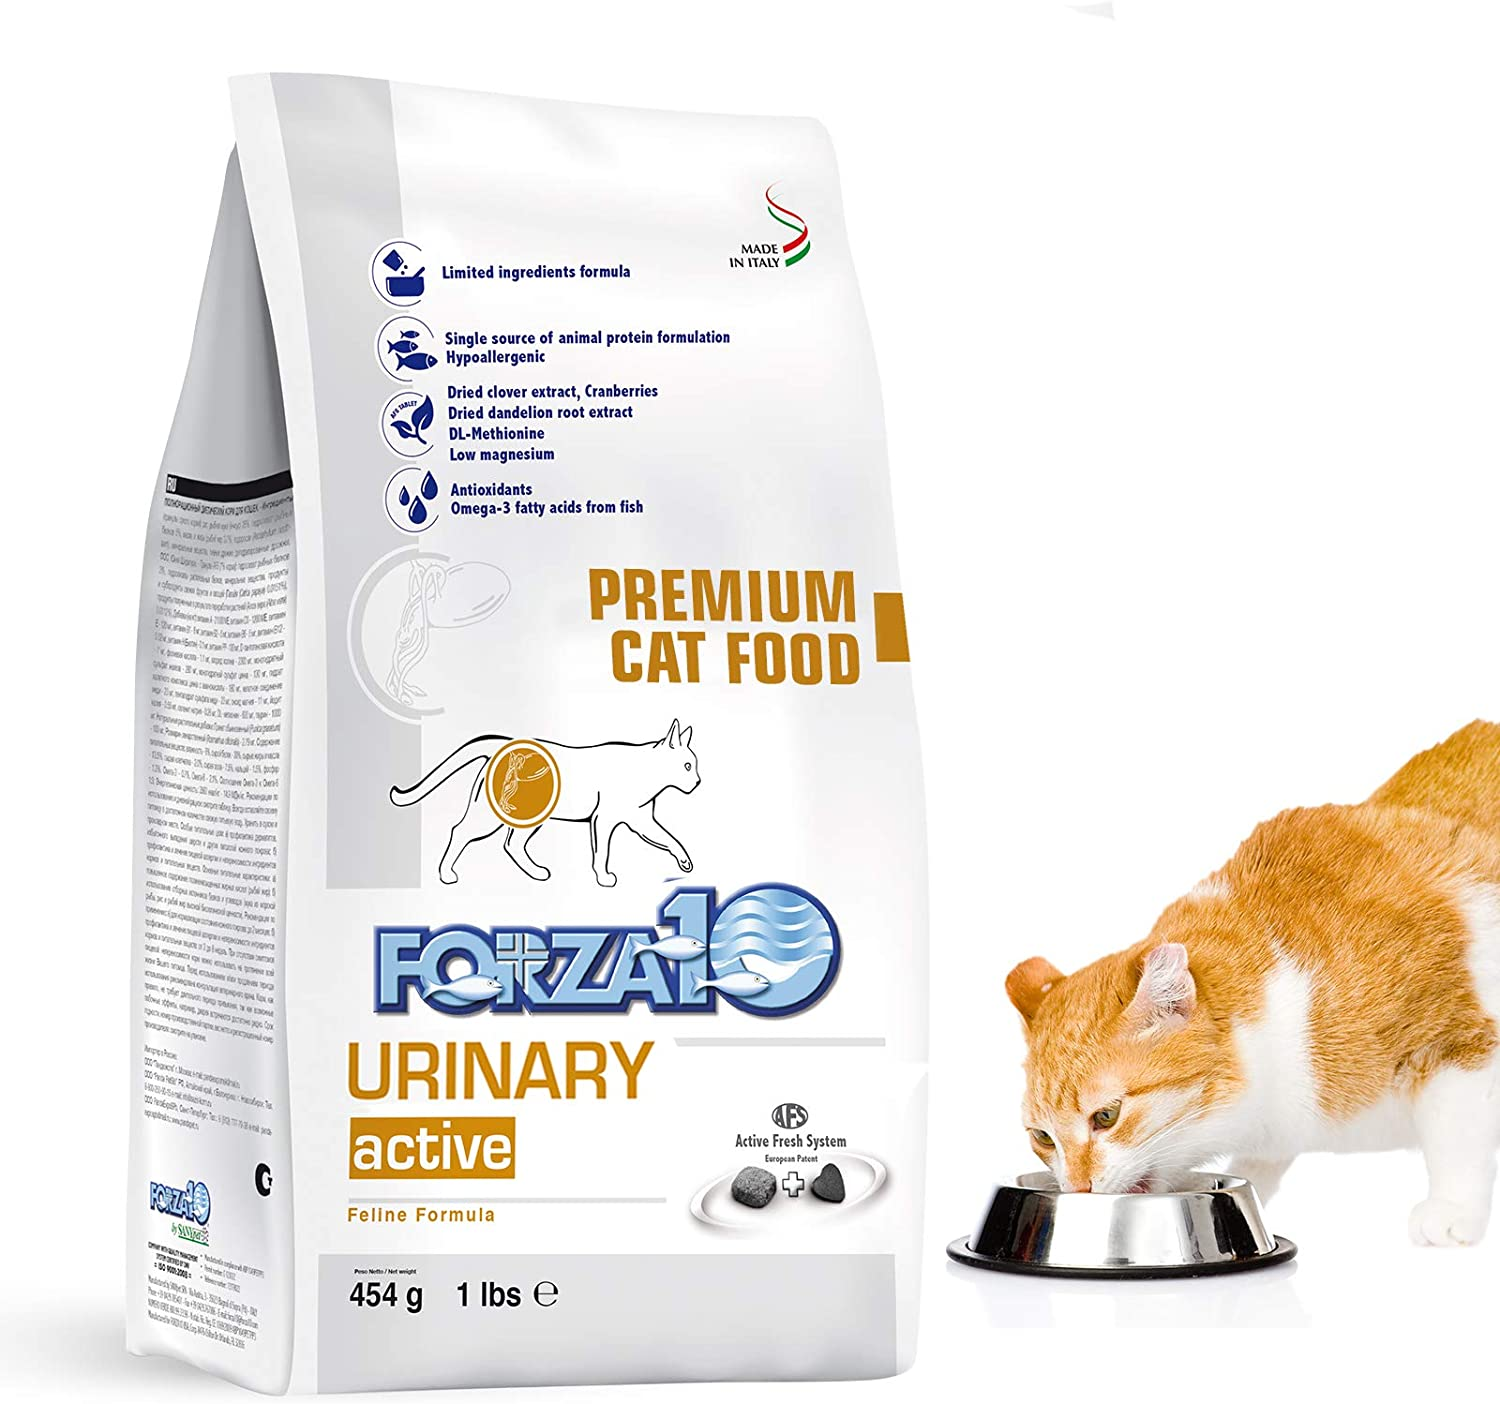 Forza10 Active Urinary Dry Cat Food, Urinary Tract Health Cat Food Dry Kibble Vet Approved Omega 3 Gluten Free, 1.0 Pound, Anchovy, Adult Cats